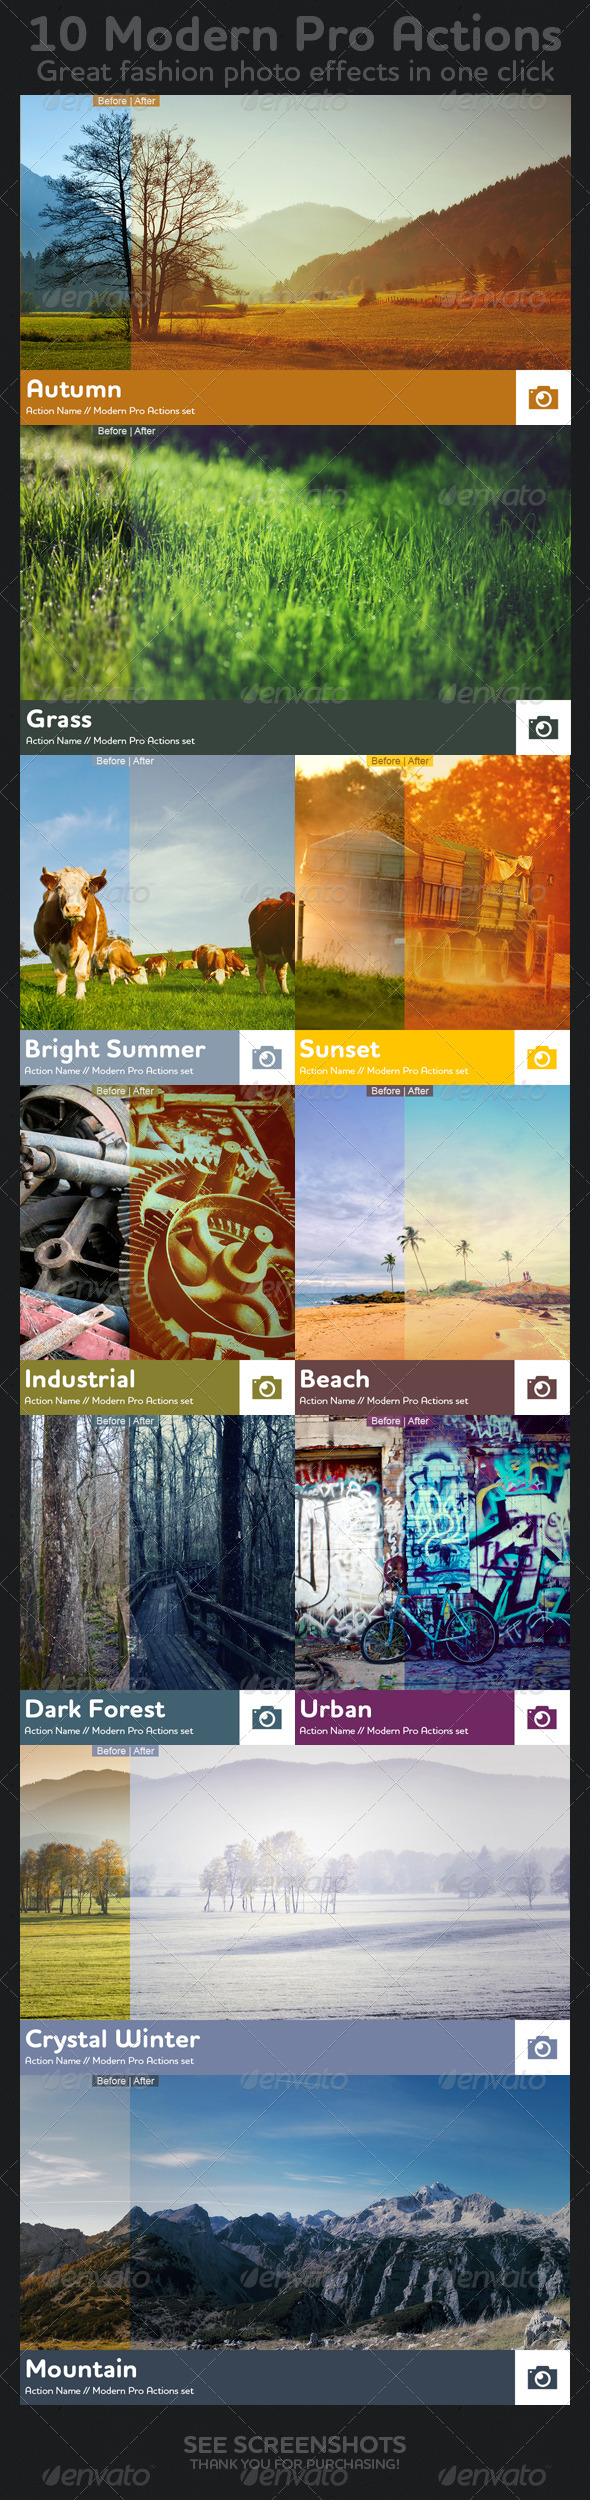 GraphicRiver 10 Modern Pro Actions 4142213